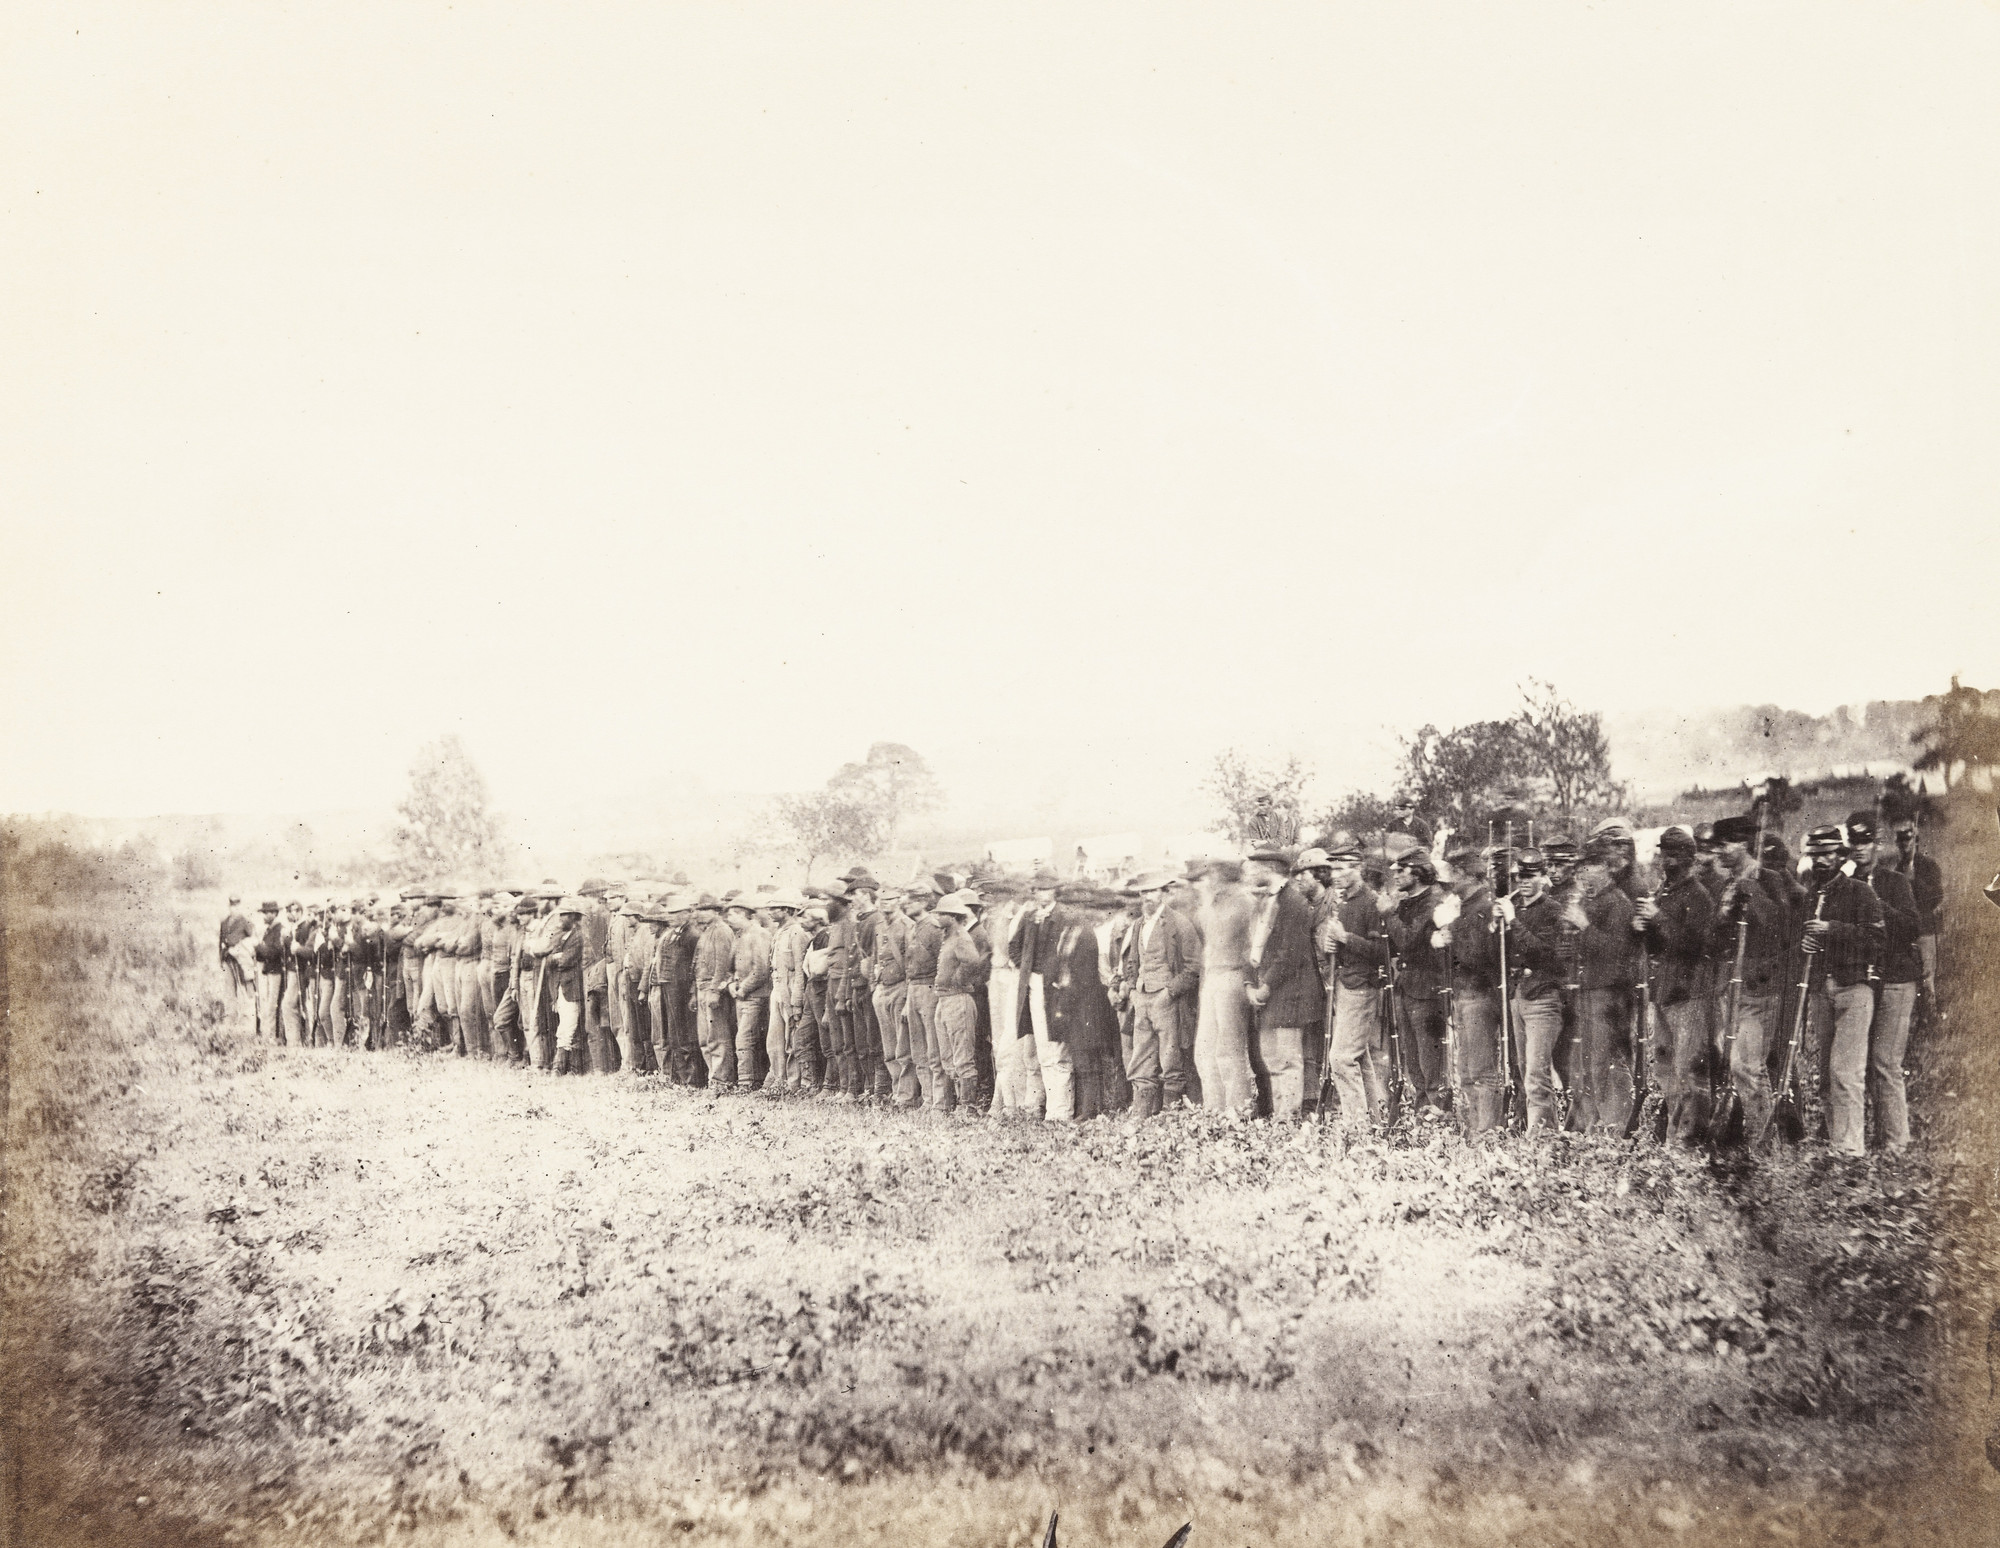 Alexander Gardner, Timothy O'Sullivan. Group of Confederate Prisoners at Fairfax Court-House. June, 1863